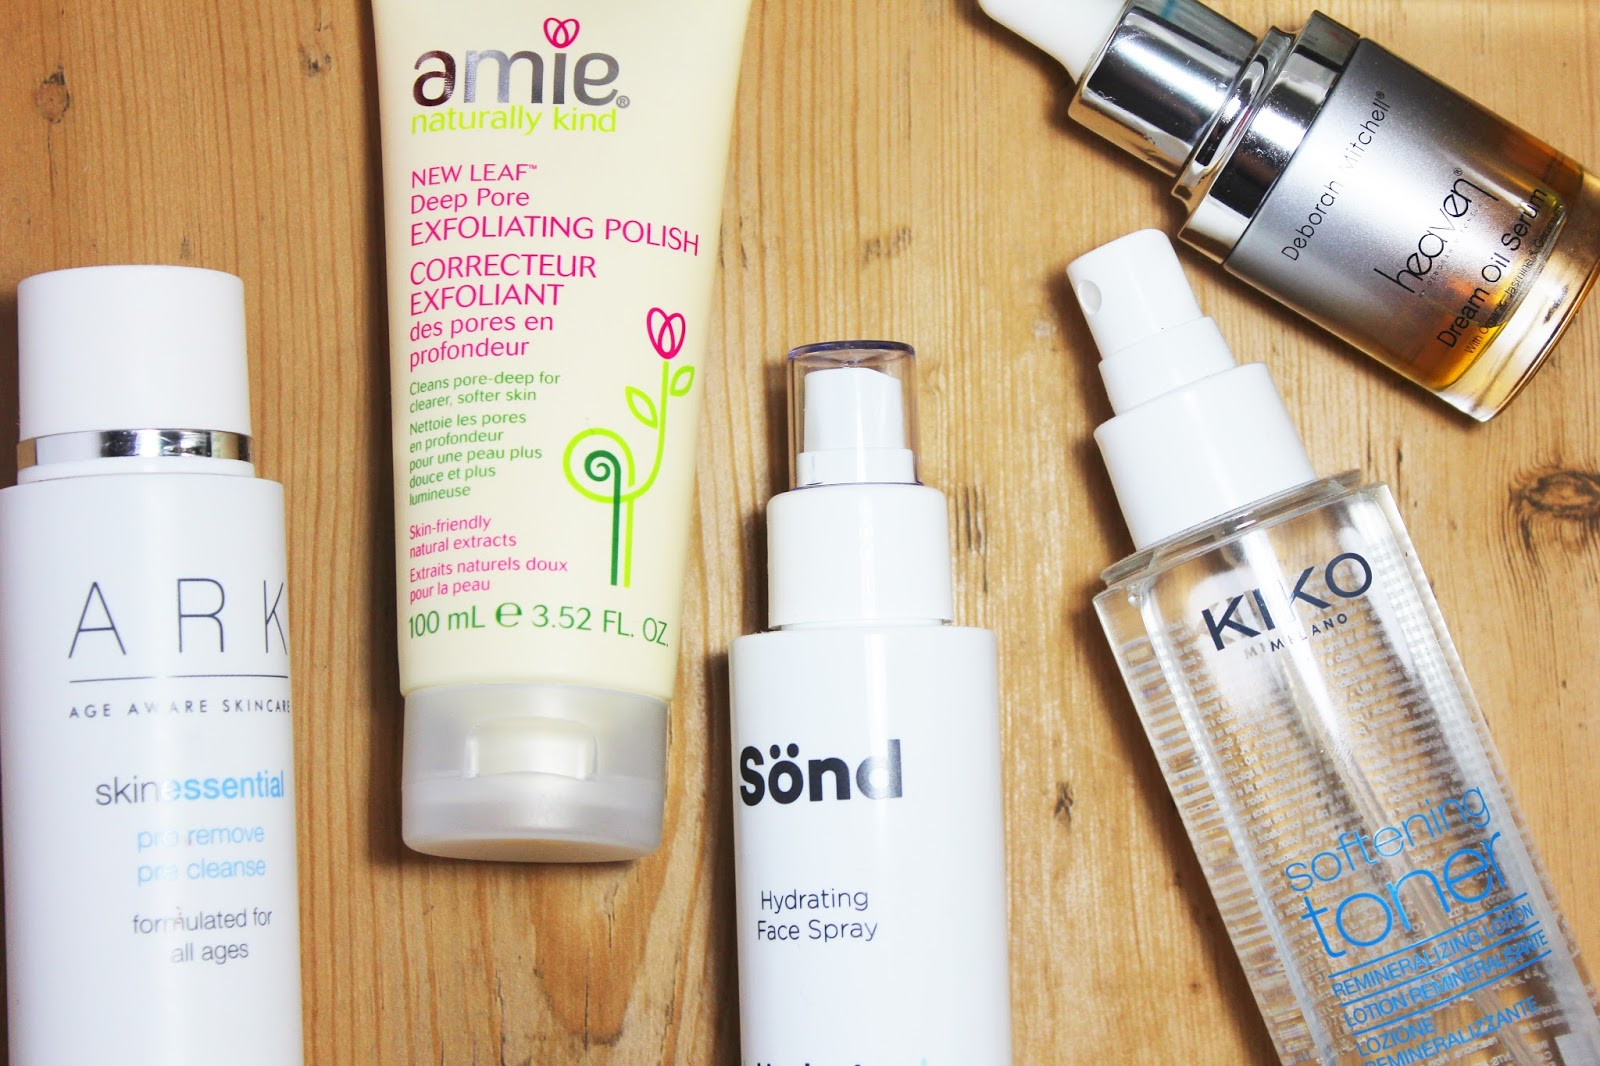 Nighttime Beauty Routine : 5 steps to Eliminate DRY SKIN